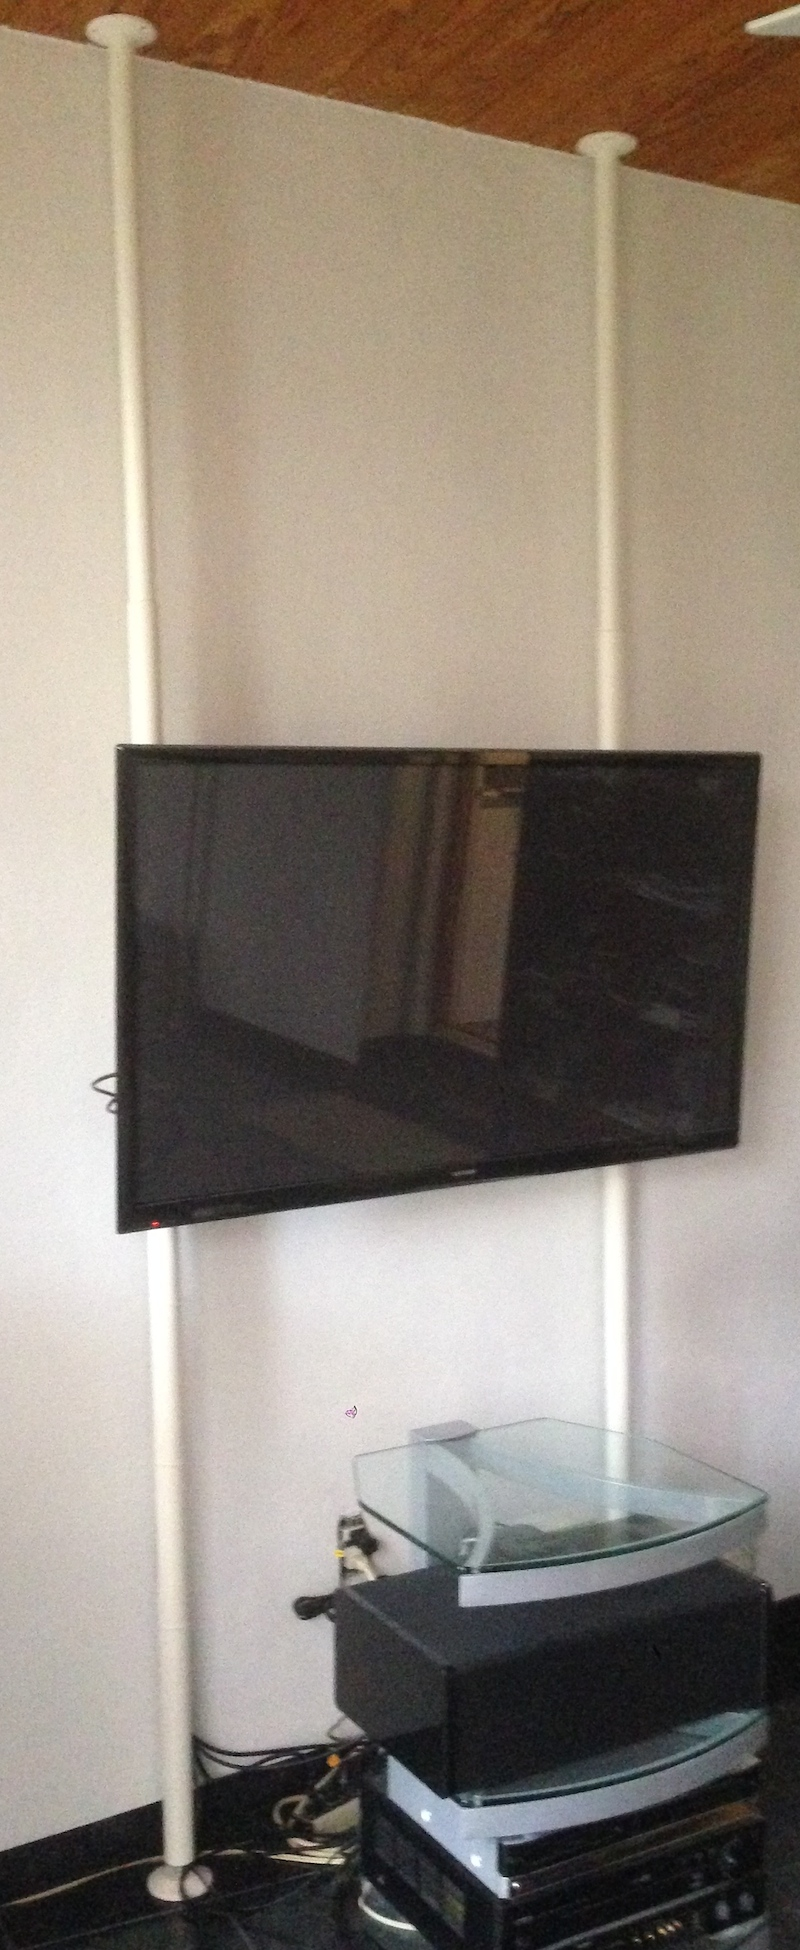 Wall Mount Tv Without Drilling Holes Tronics Kroesche Io